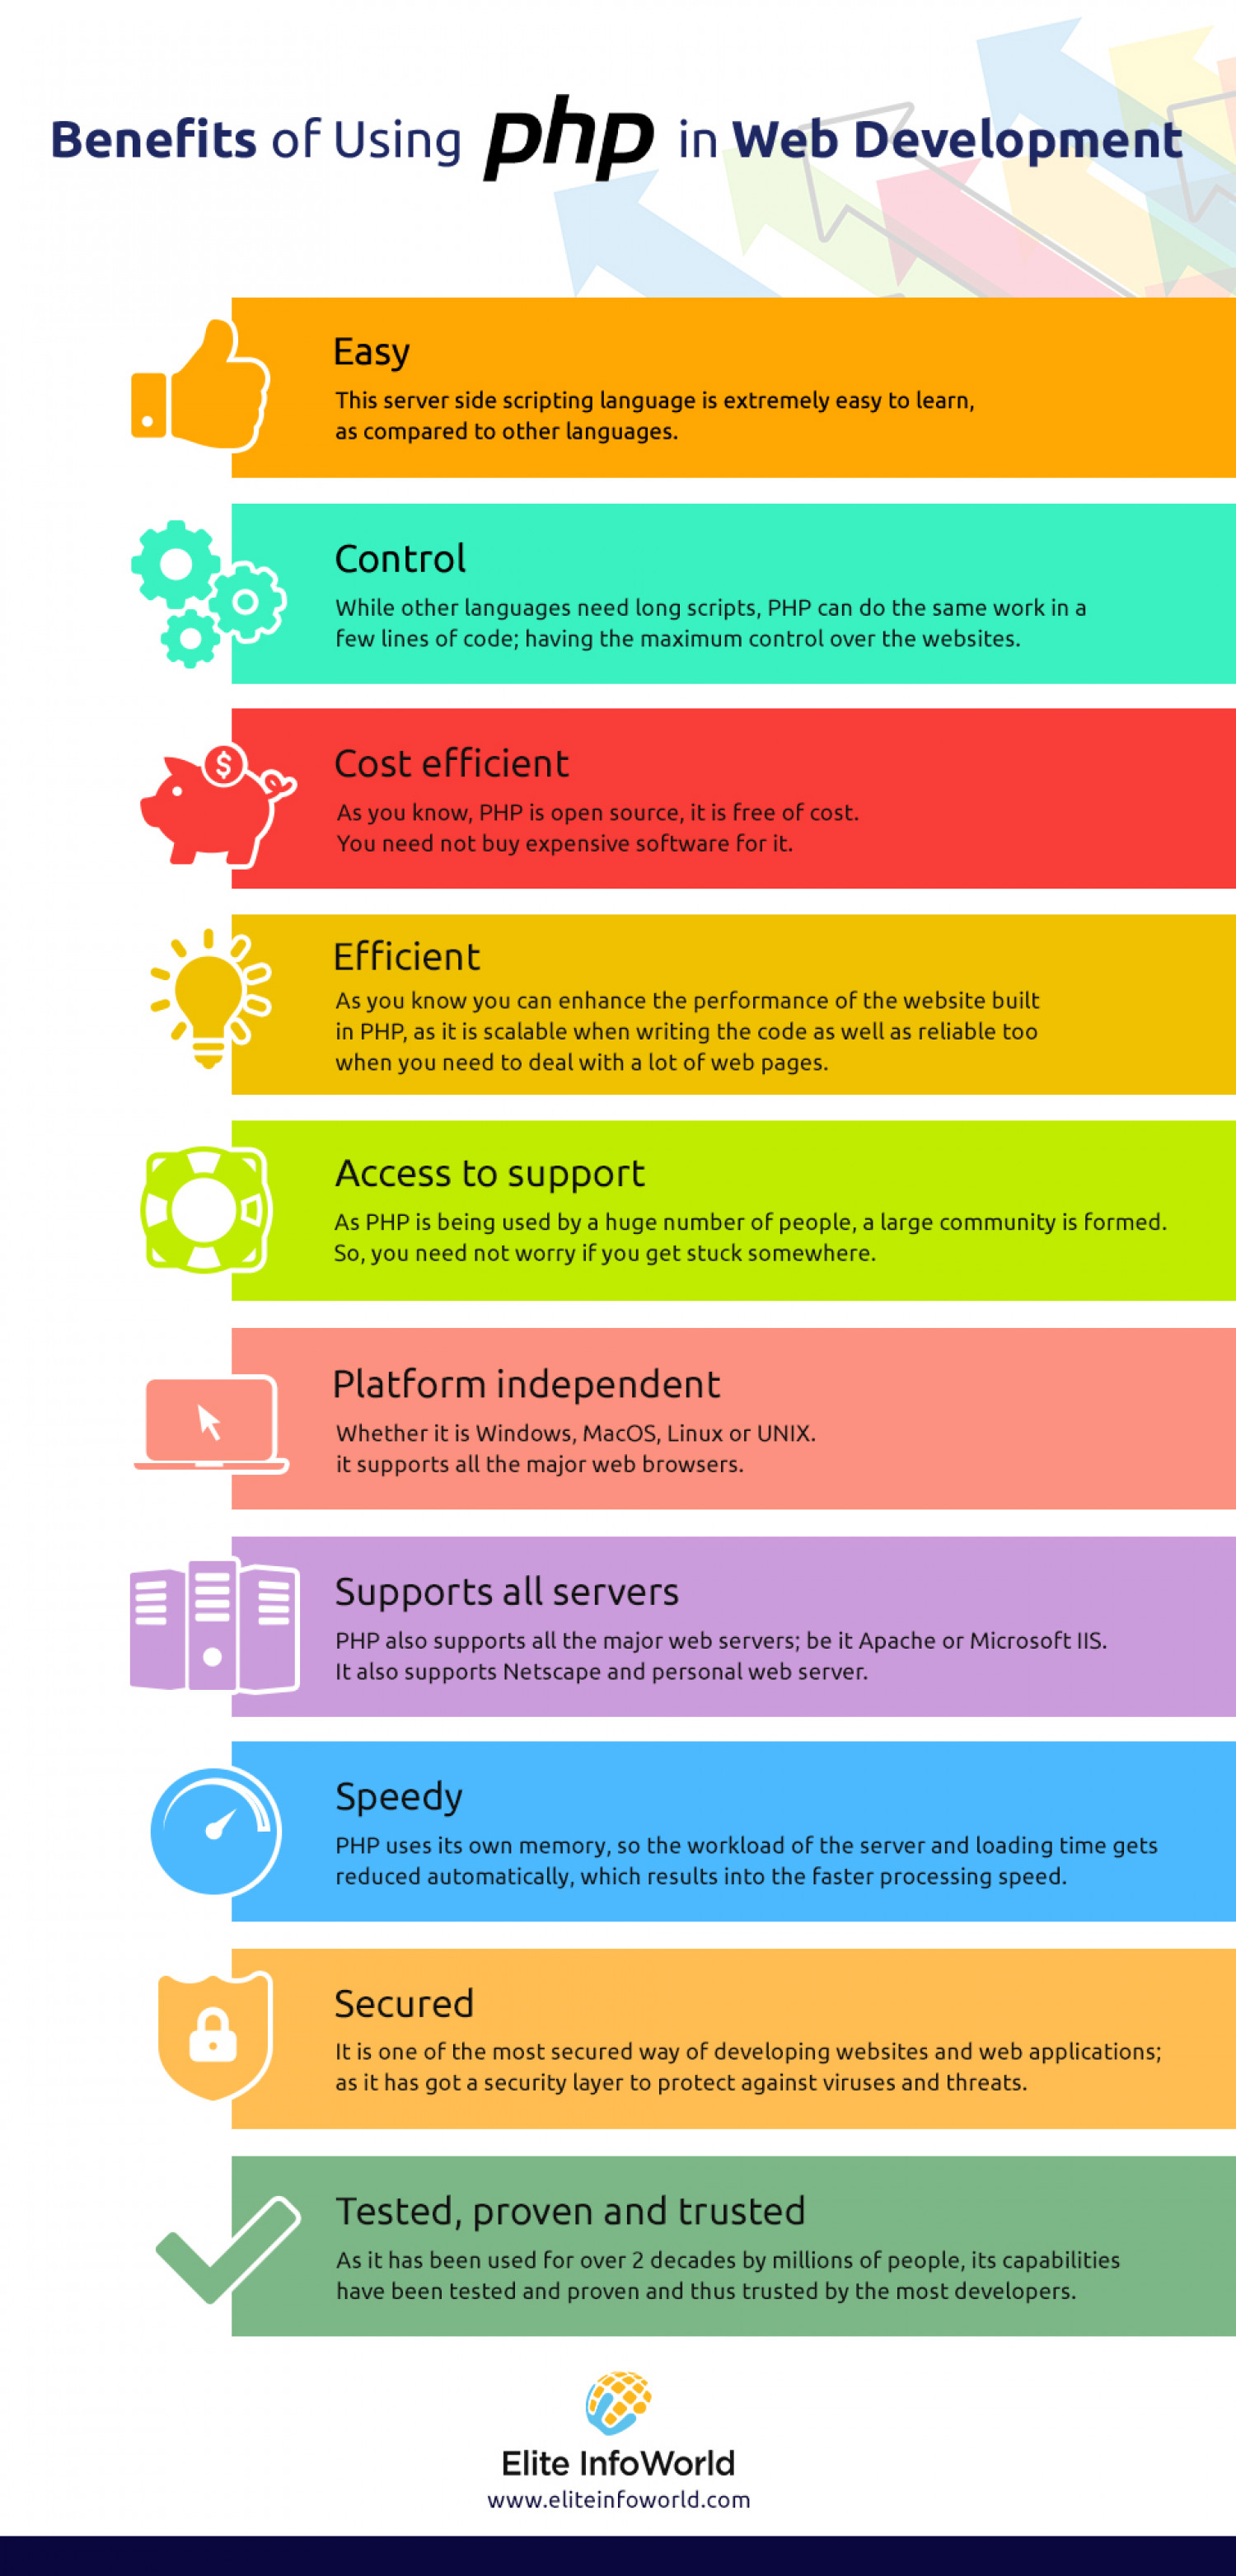 Top Benefits of Using PHP in Web Development [INFOGRAPHIC] Infographic